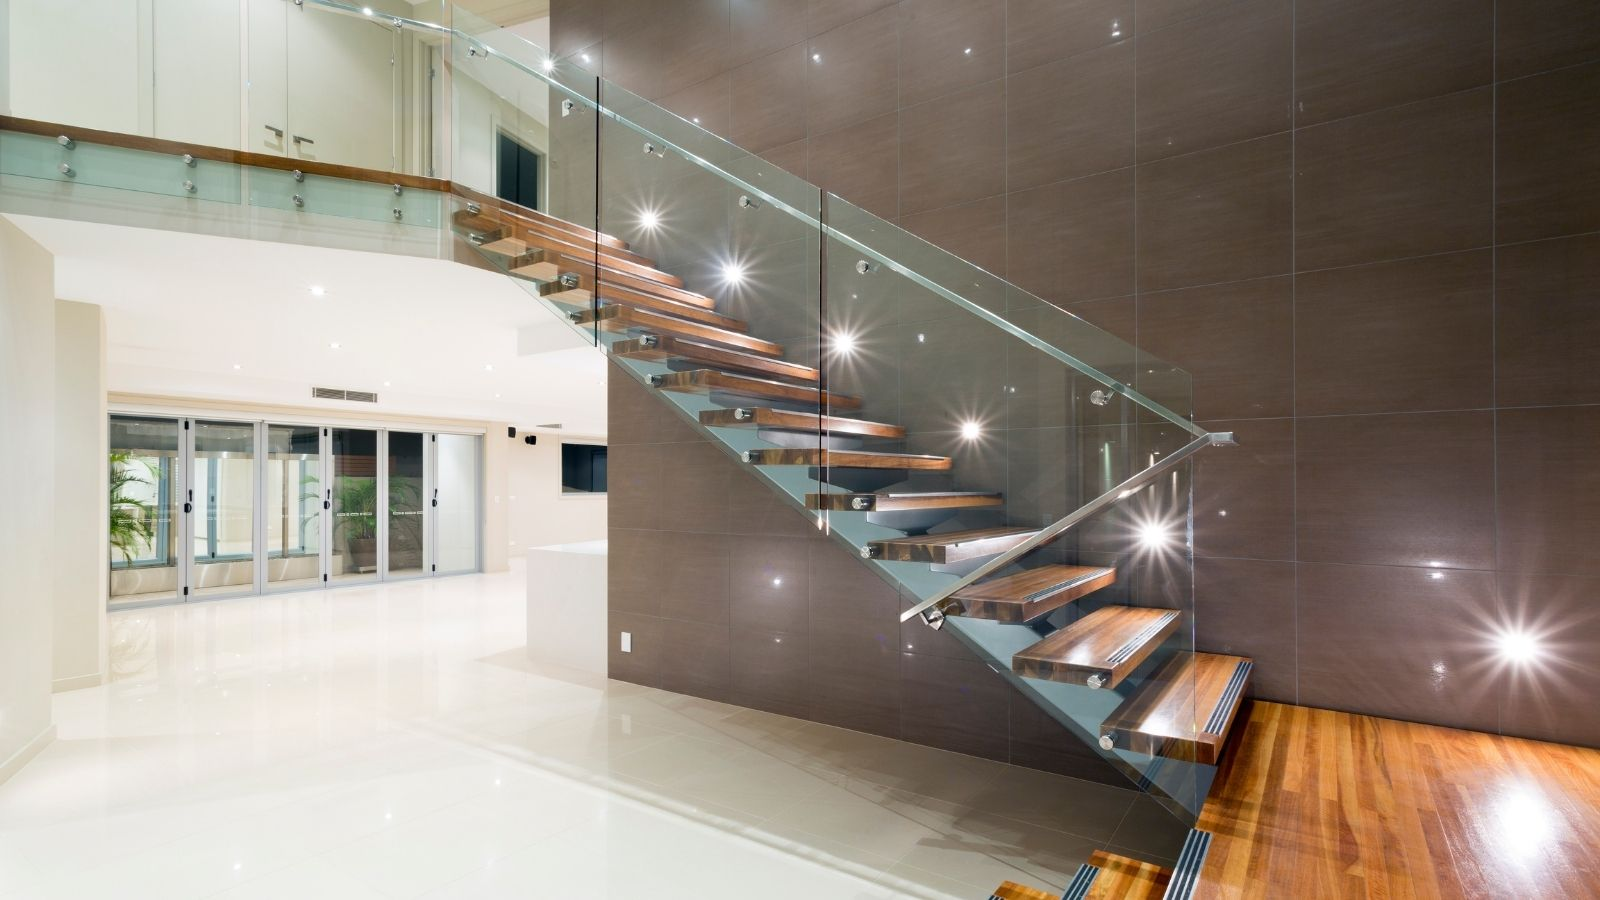 What staircase design should you choose?